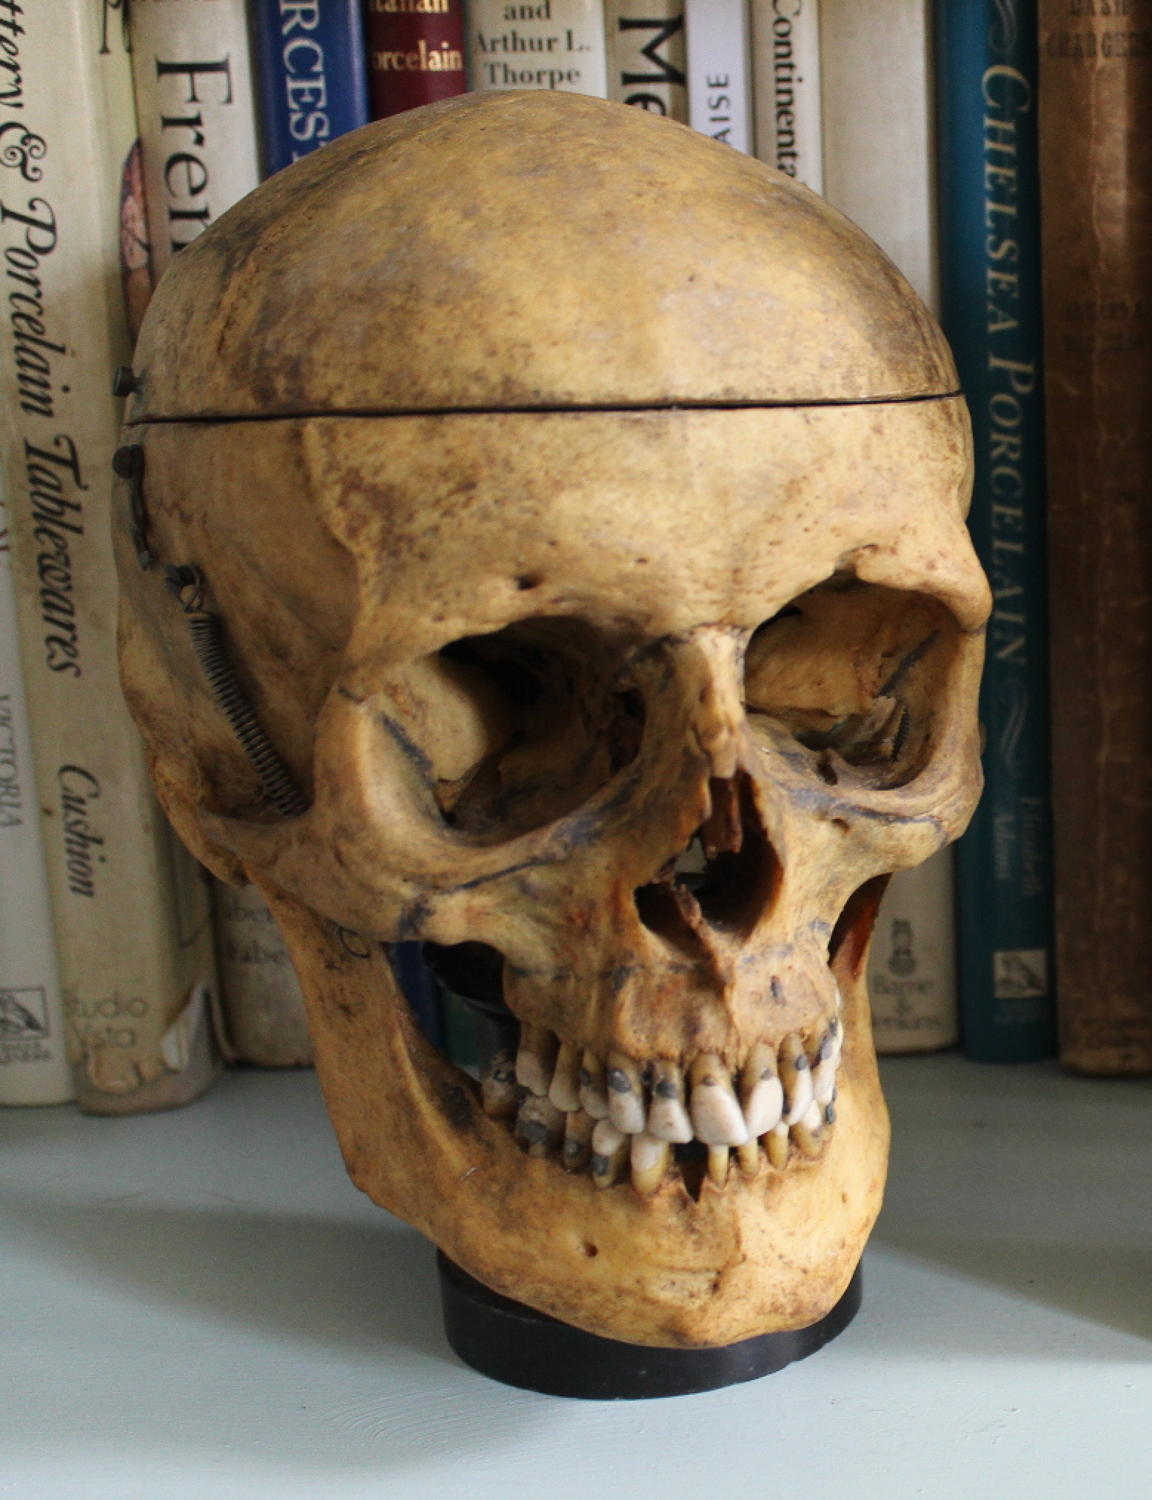 A Vintage Articulated Human Skull